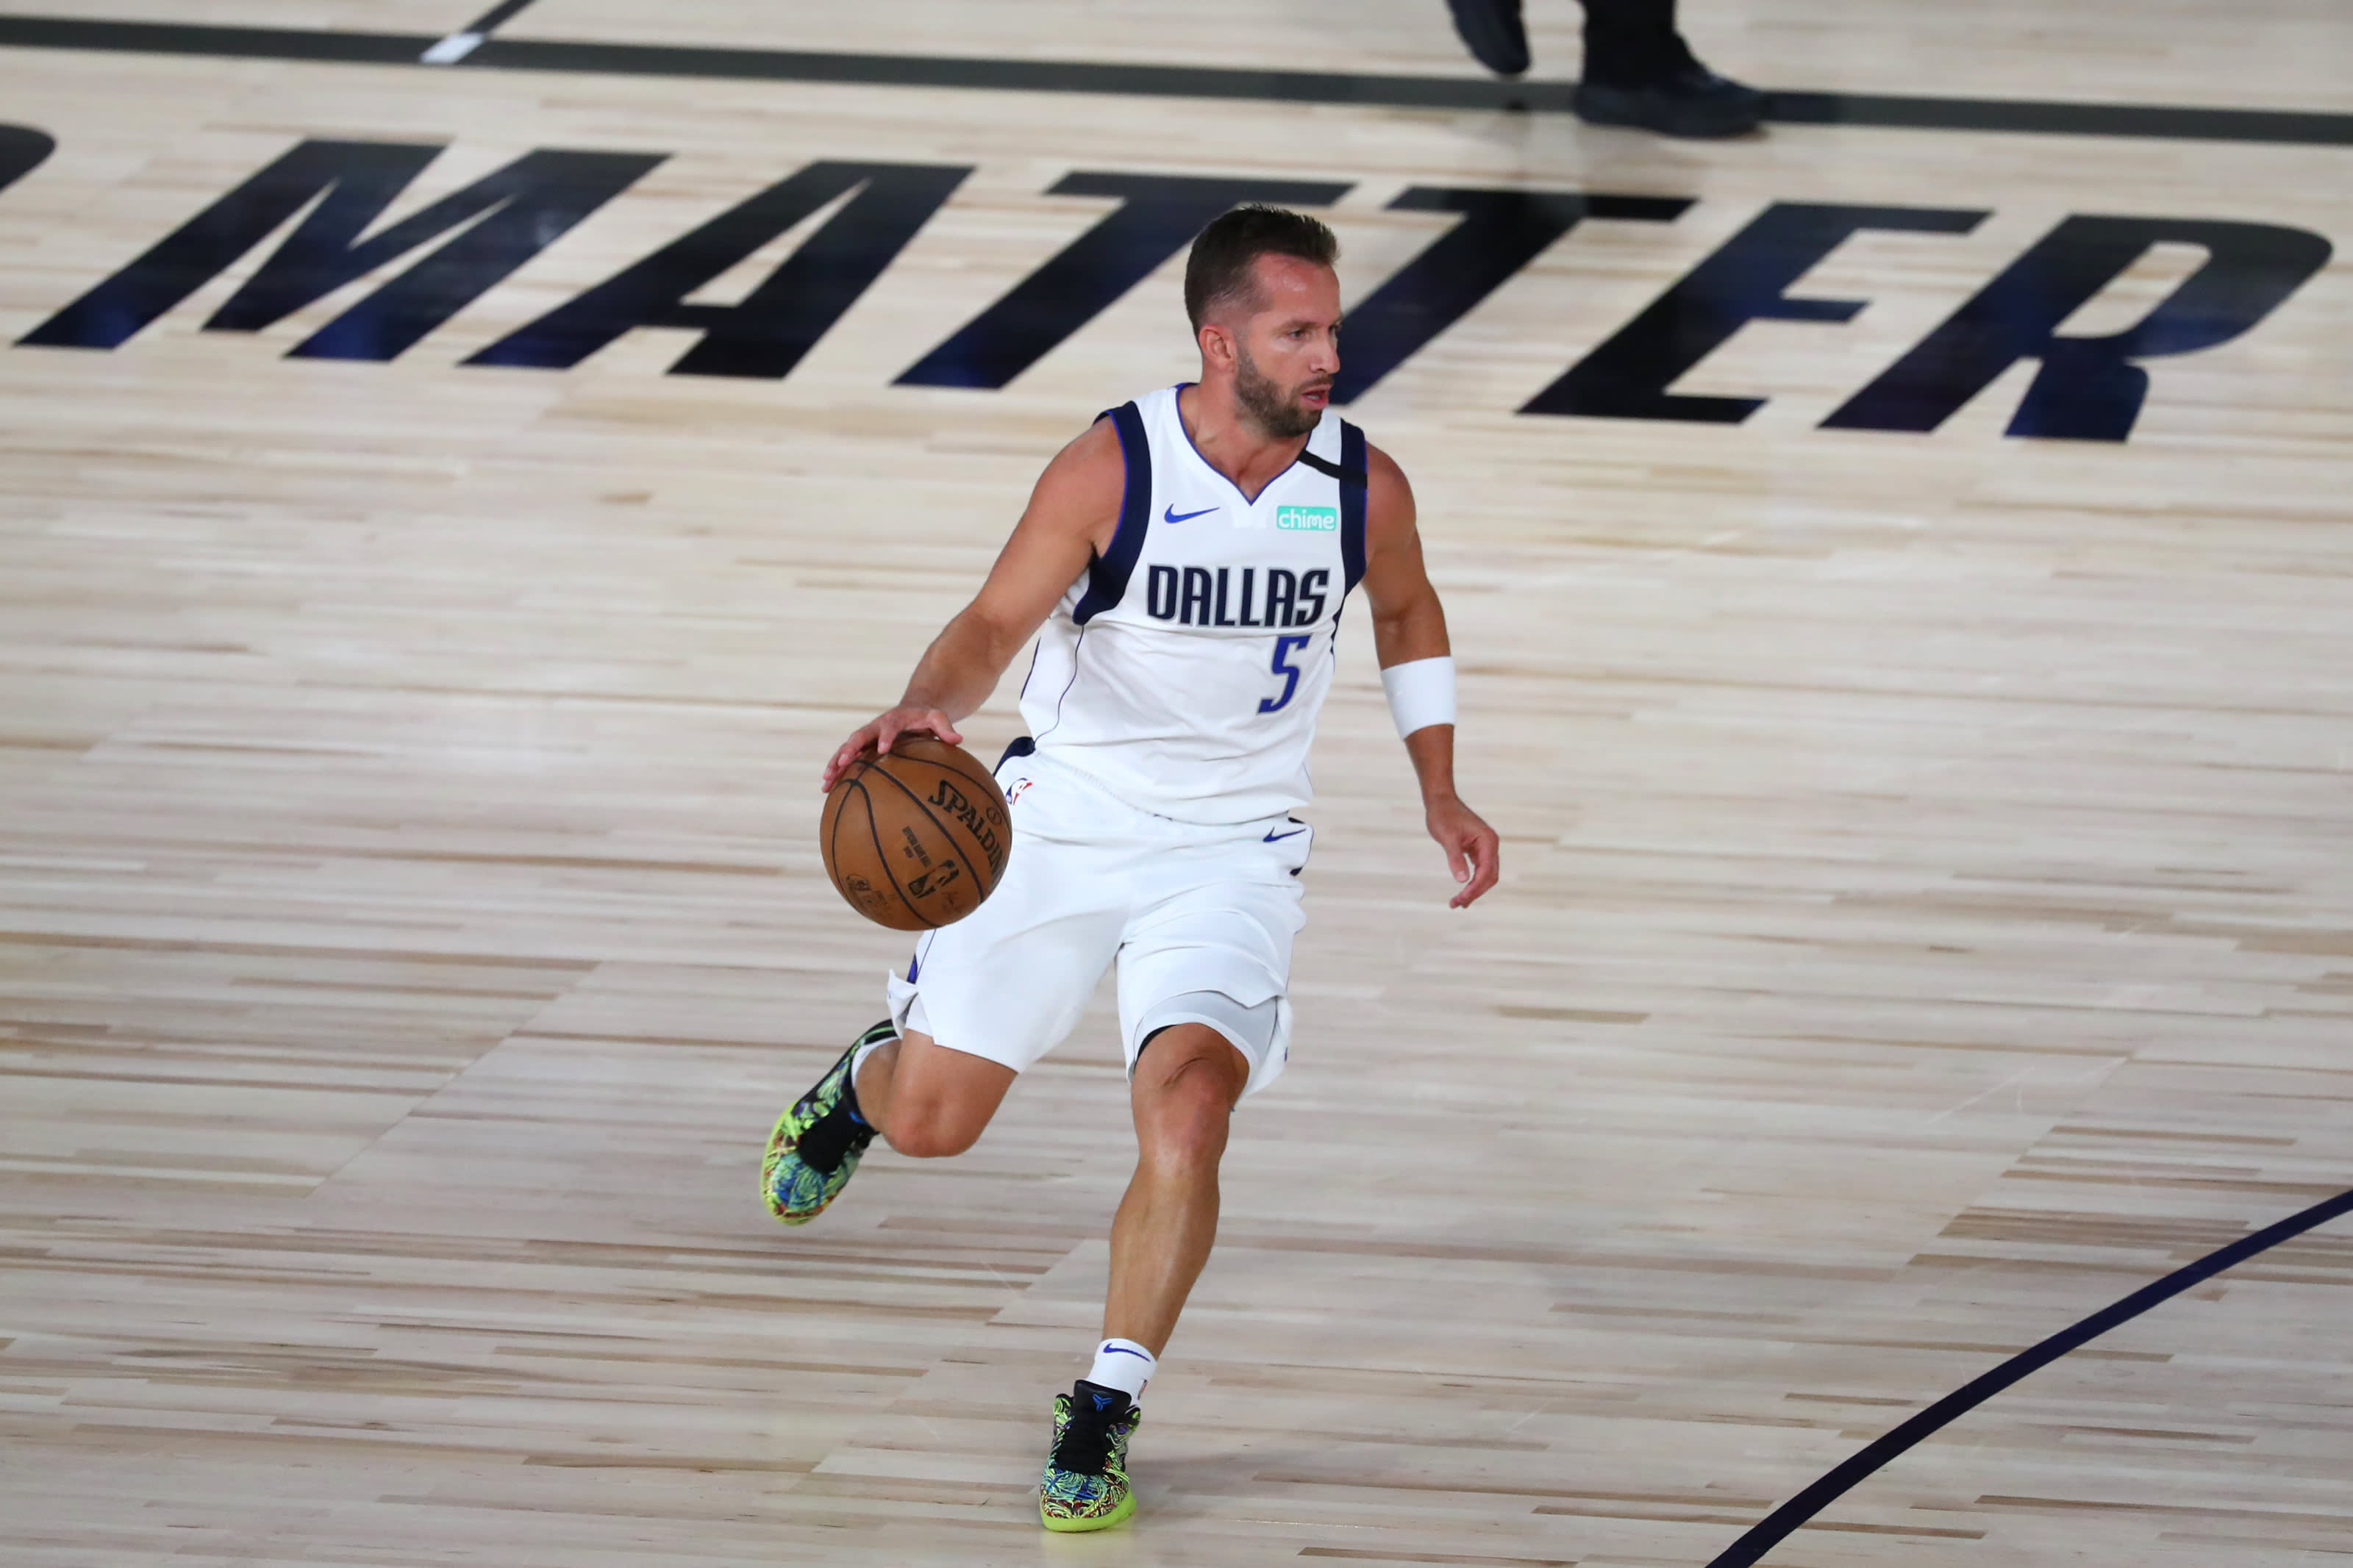 Dallas Mavericks, J.J. Barea